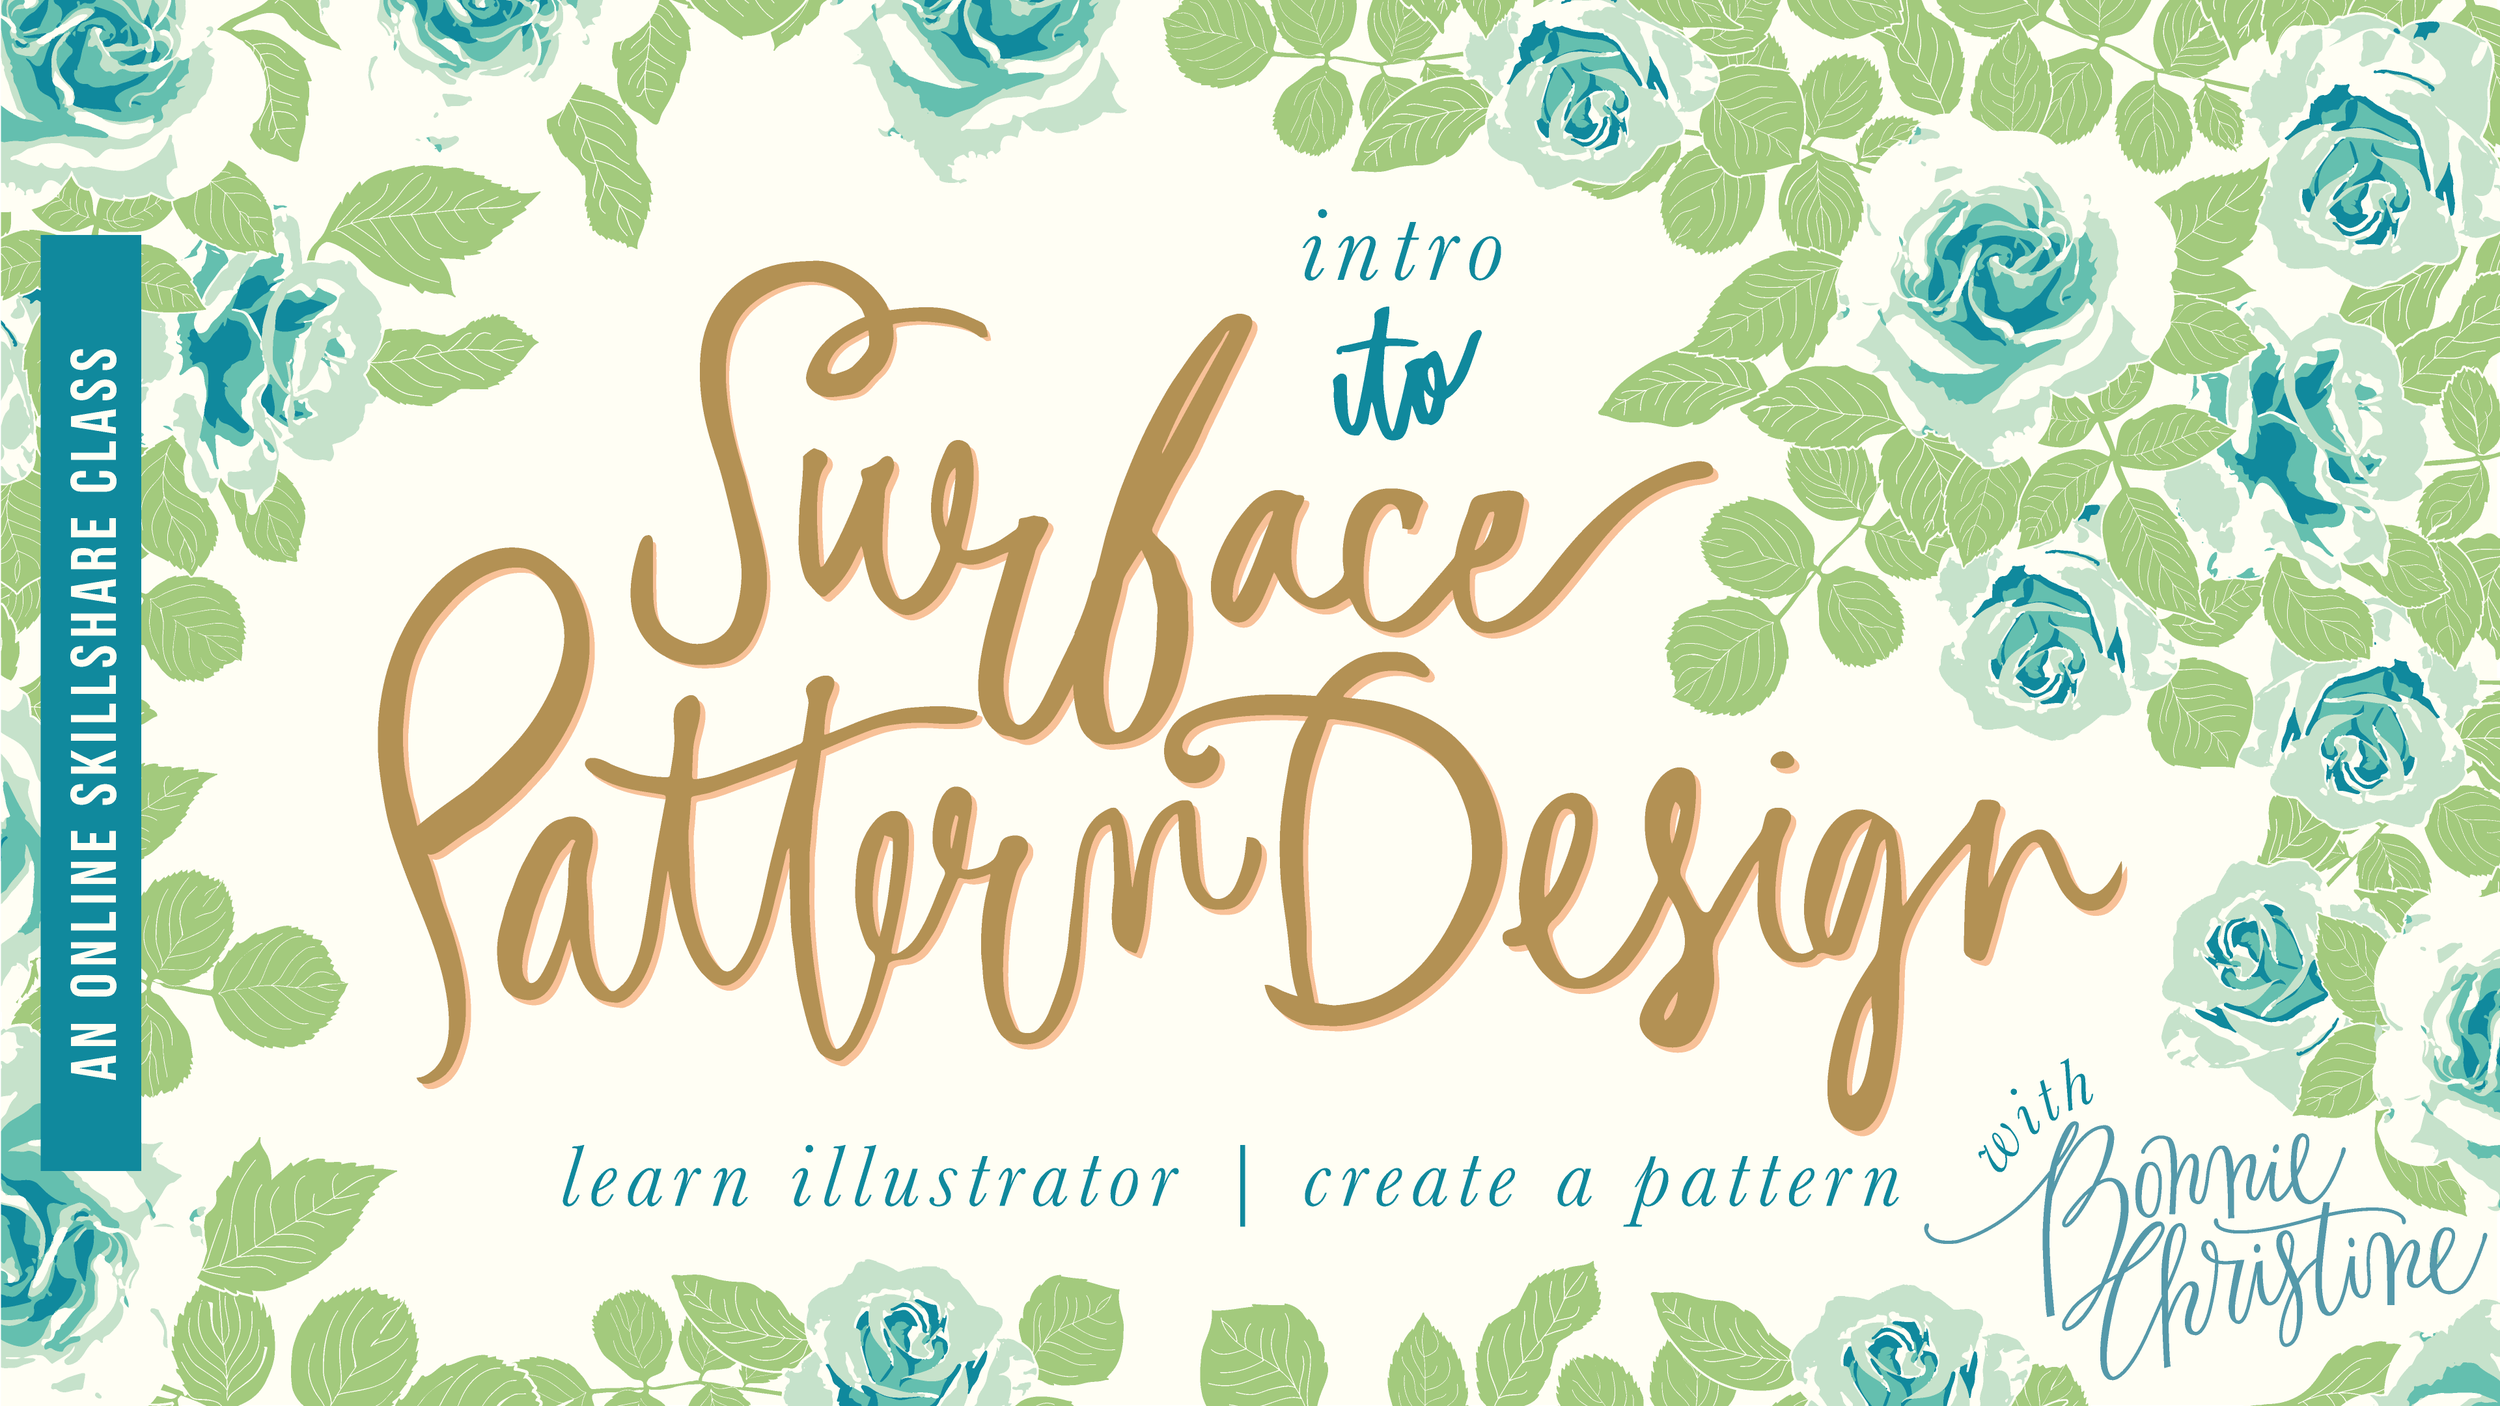 intro to surface pattern design